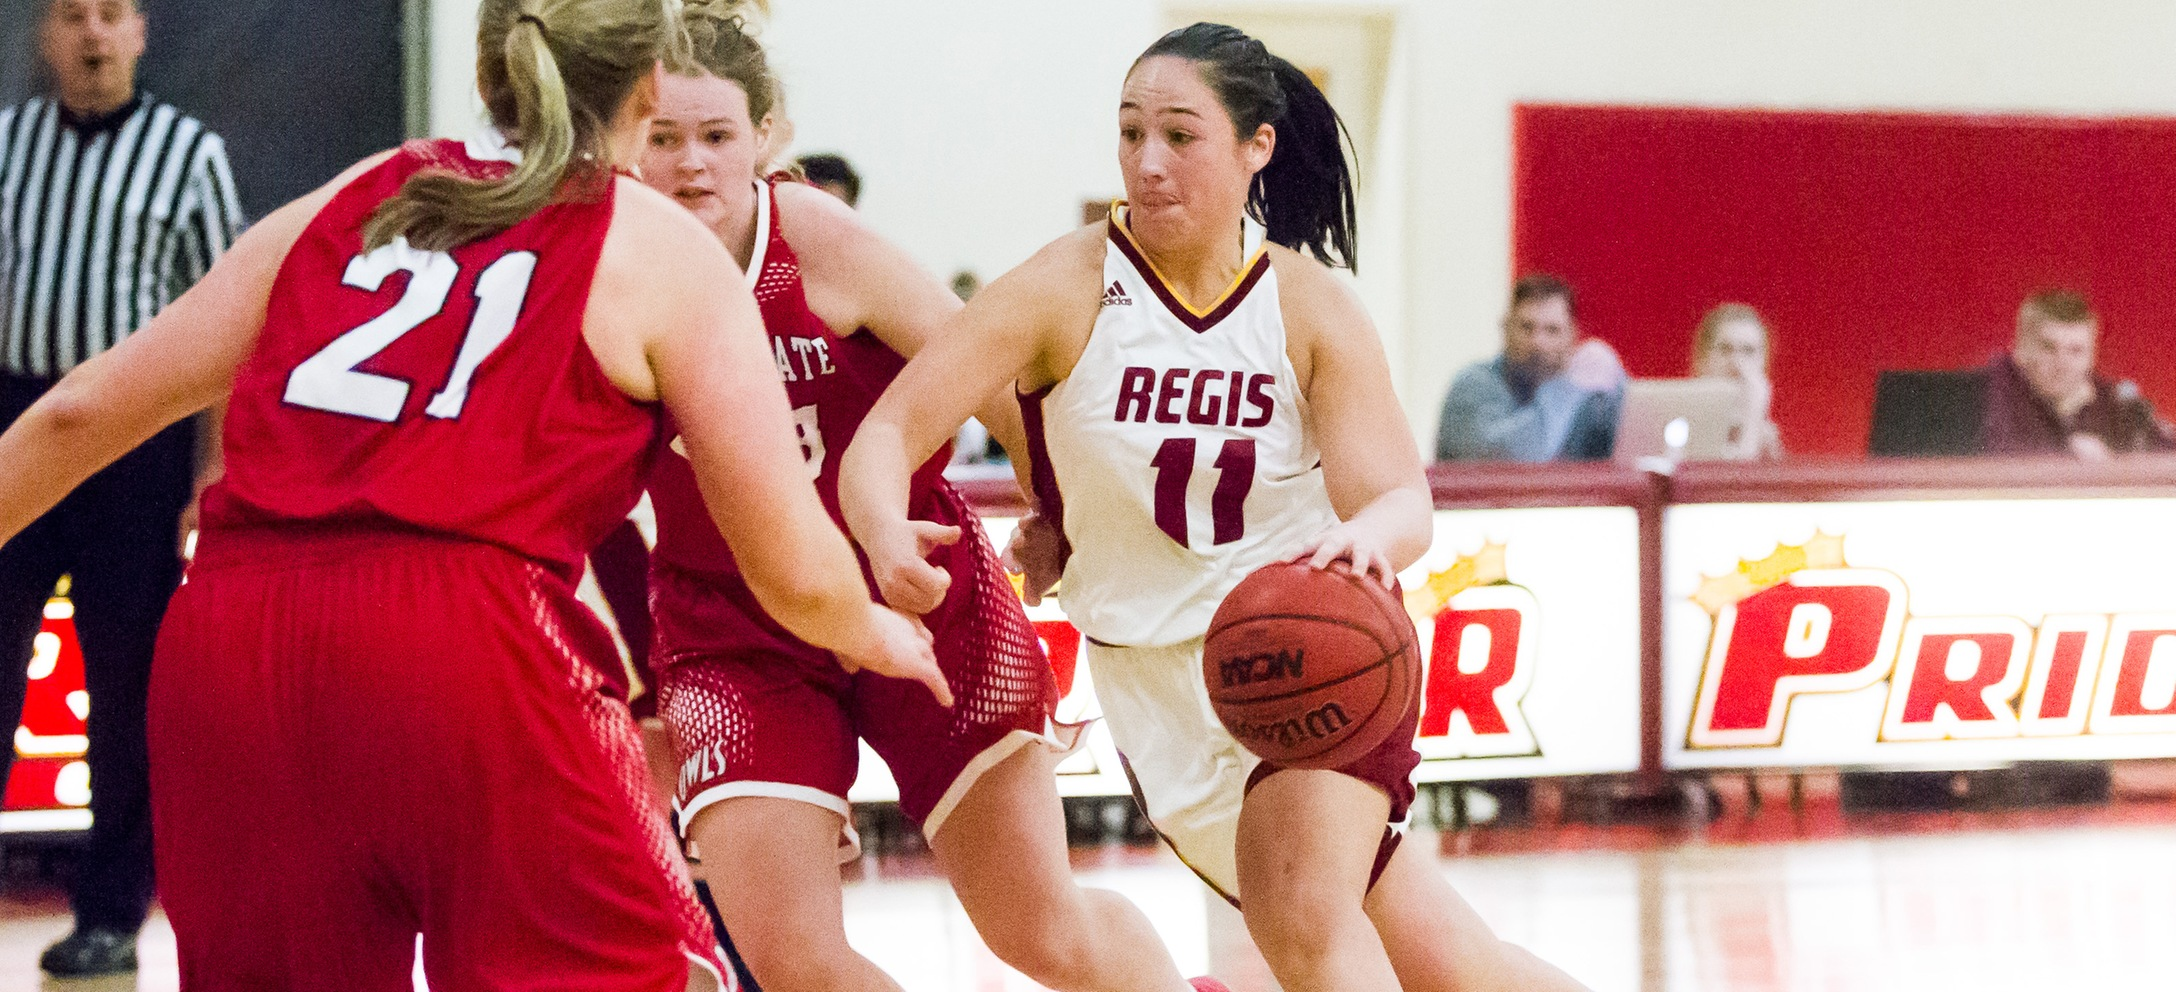 Women's Basketball Tops Lasell, Keeps Pace For Conference Lead